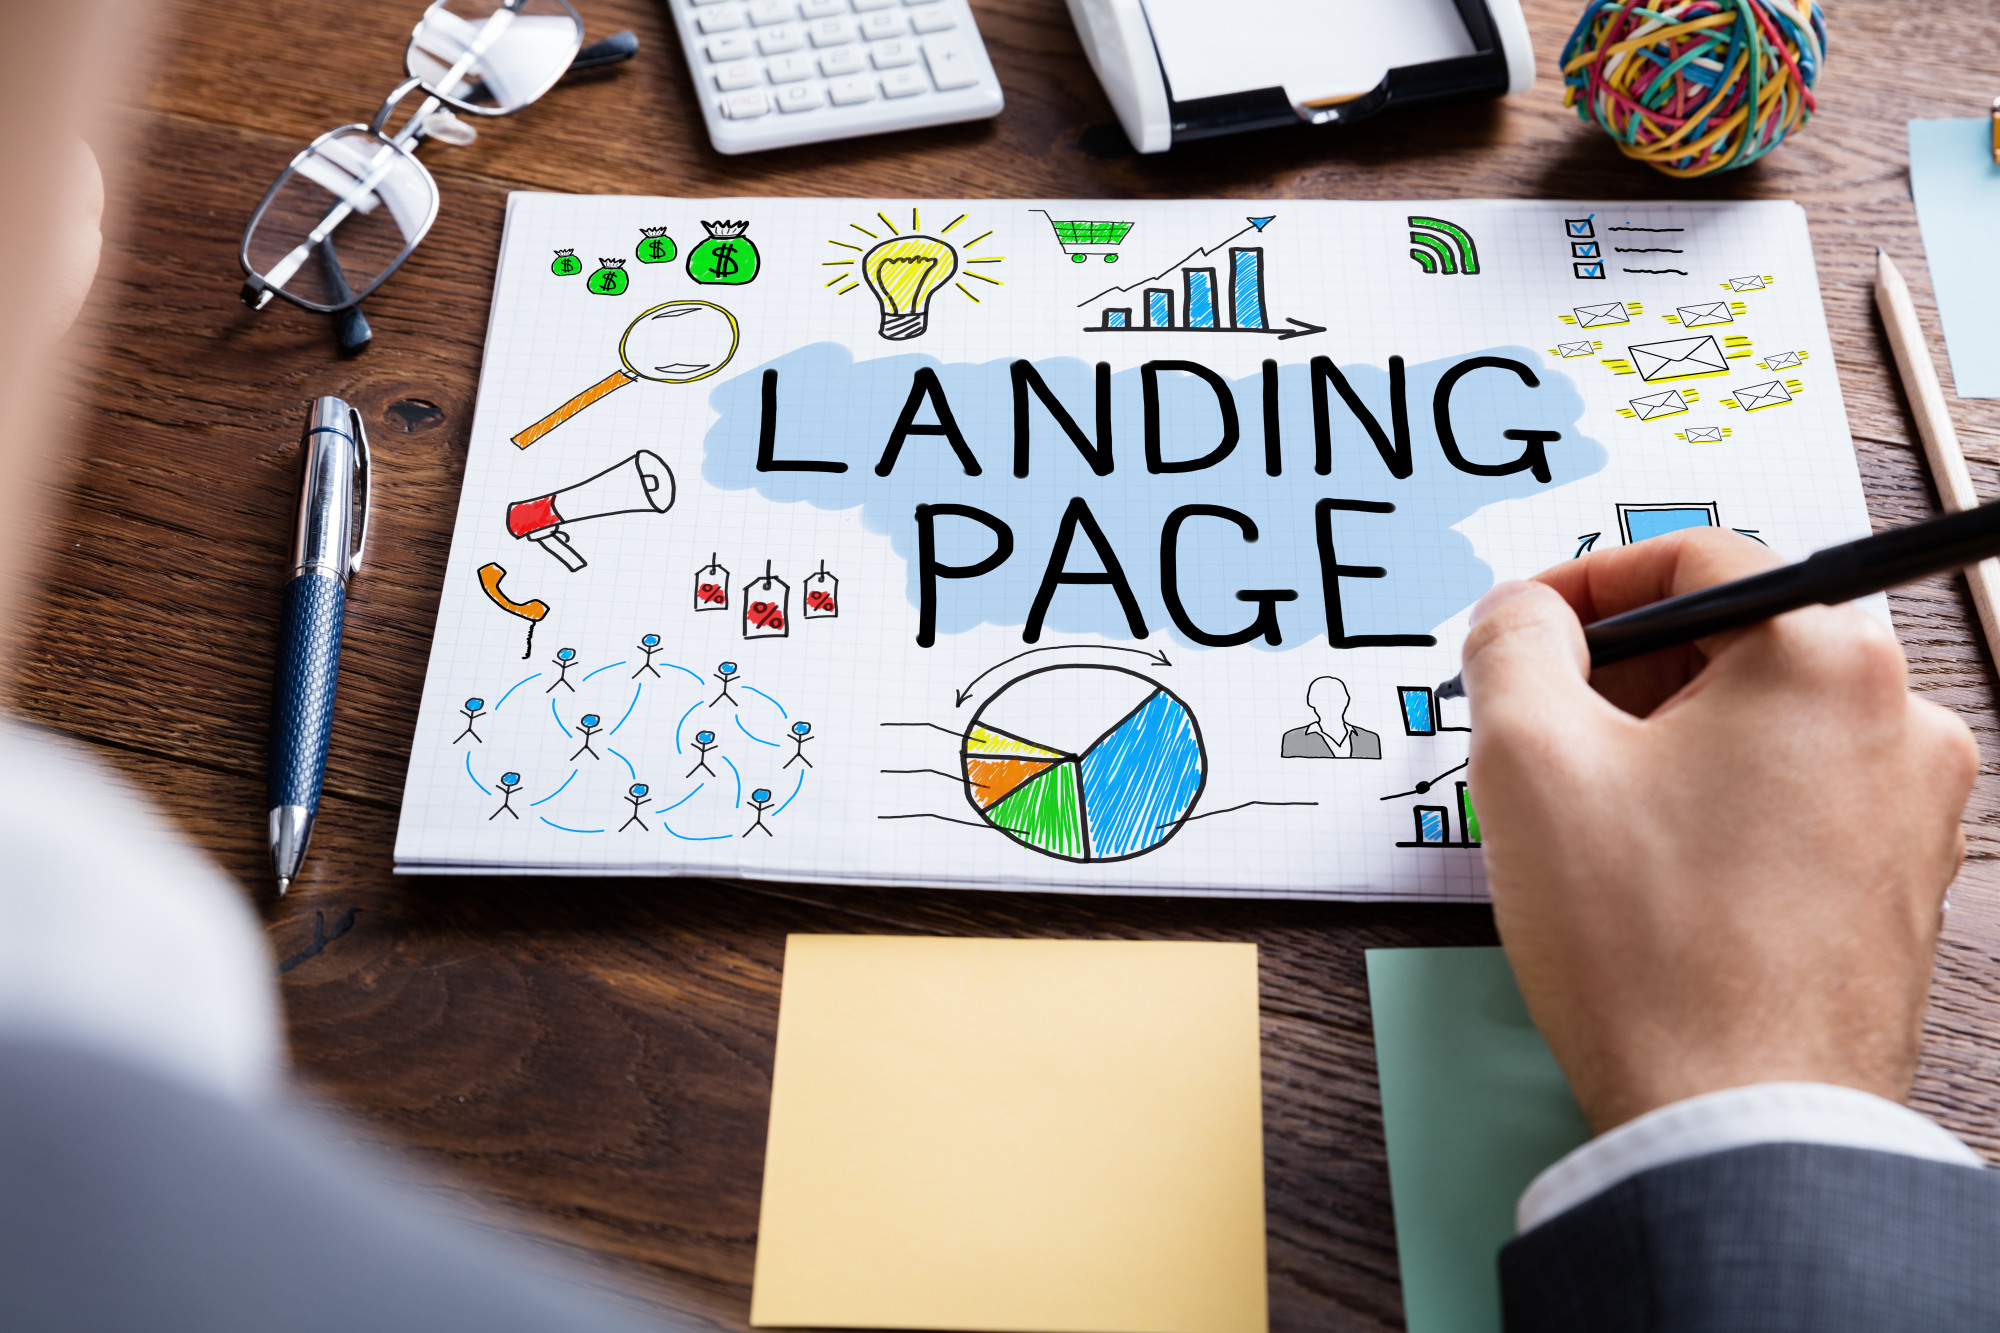 what is the difference between a website and a landing page